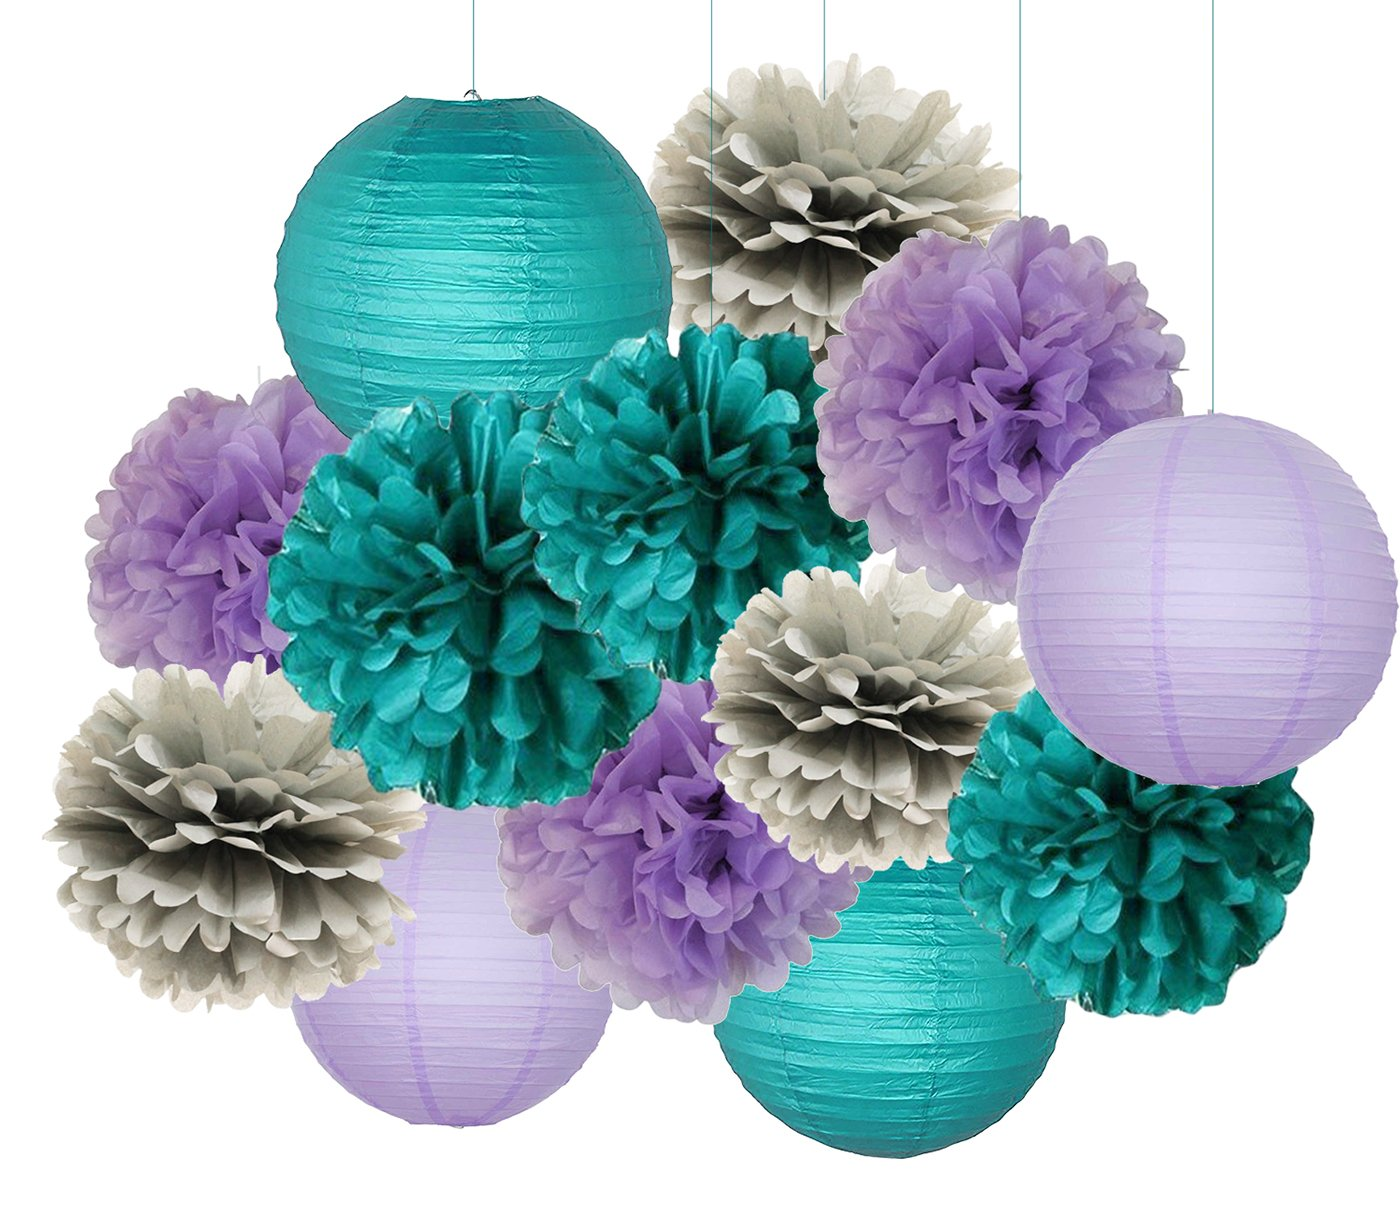 Mermaid Party Decorations Teal Purple Grey Baby Shower Decorations 16 pcs Teal Purple Grey Tissue Paper Pom Pom Paper Lanterns for Teal Purple Bridal Shower Decor Birthday Decorations Furuix